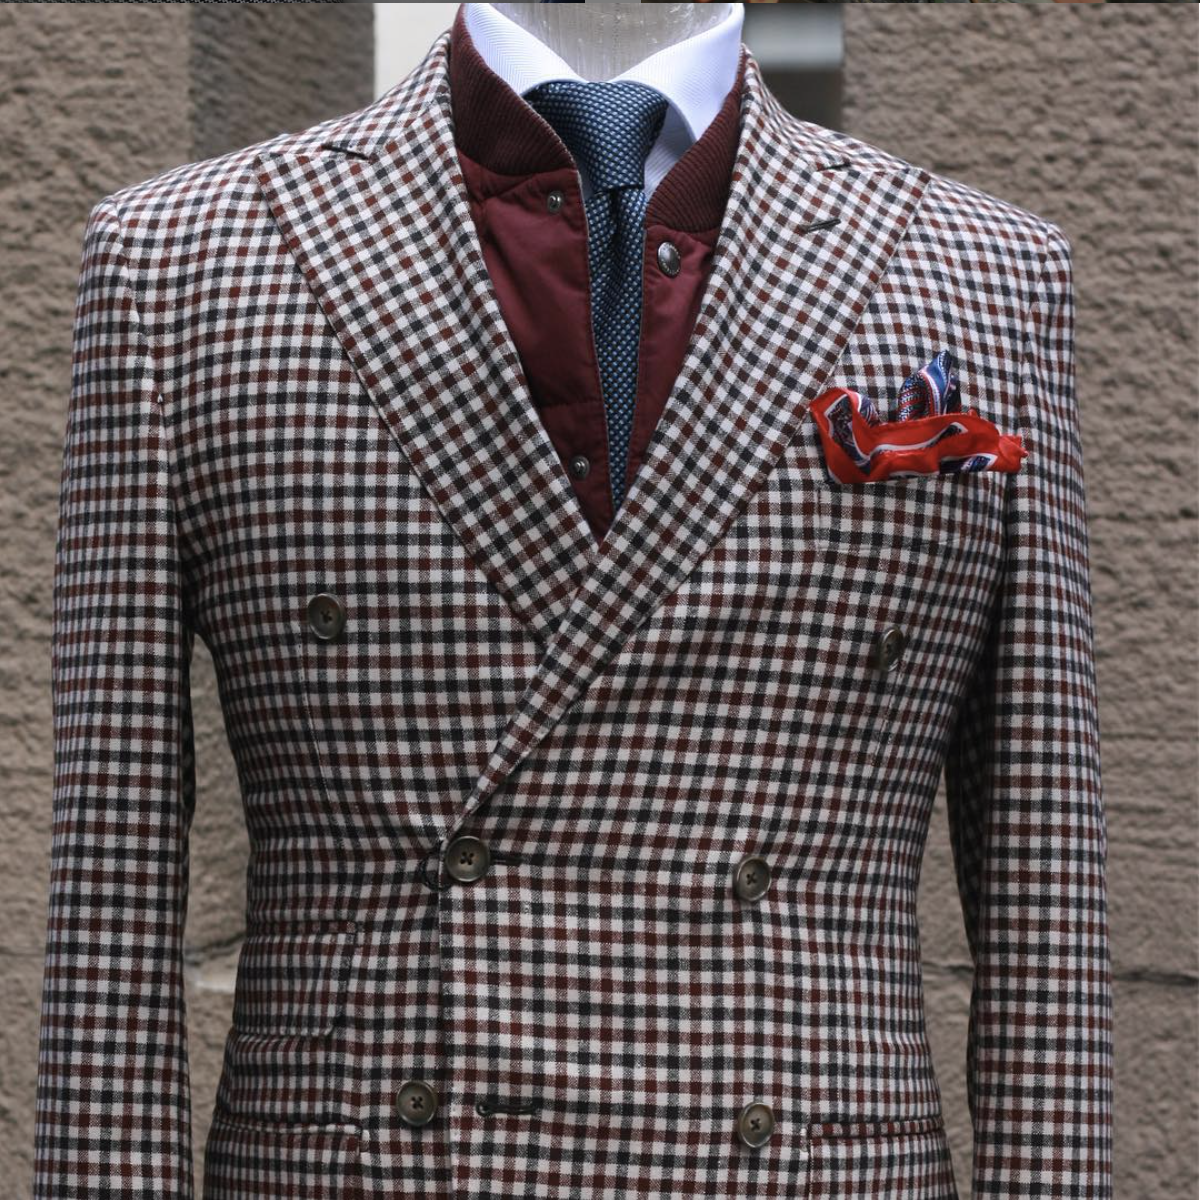 Ready to Dress The Way You Were Meant To? Start Here